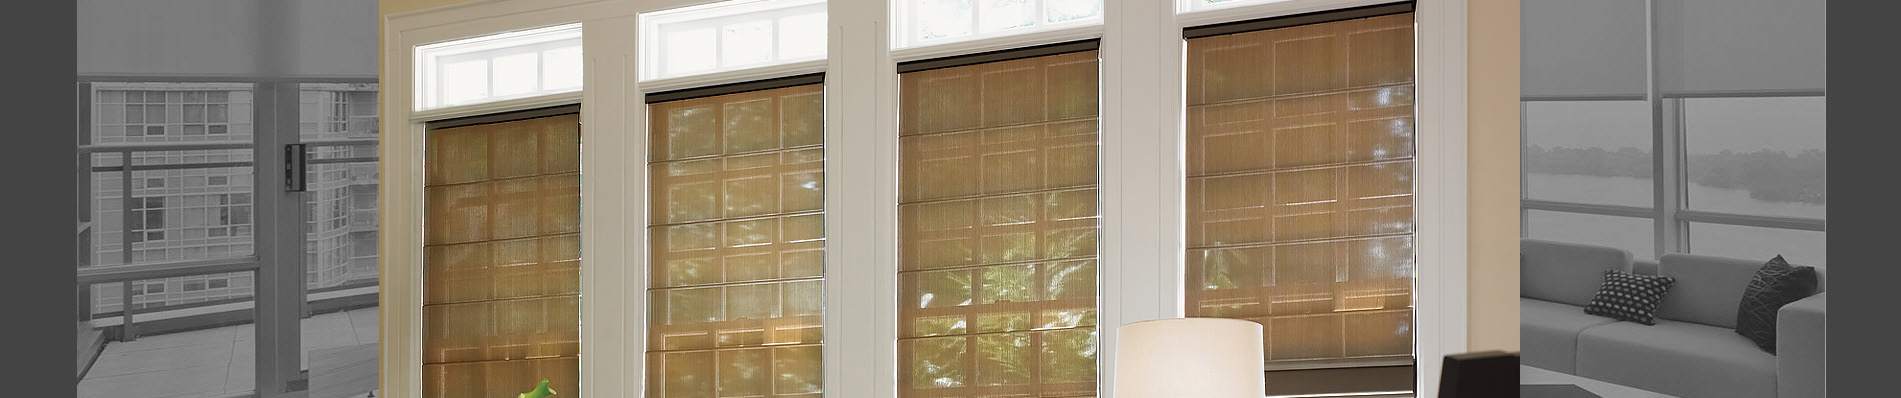 Woven roman shades can be motorized for easy privacy.